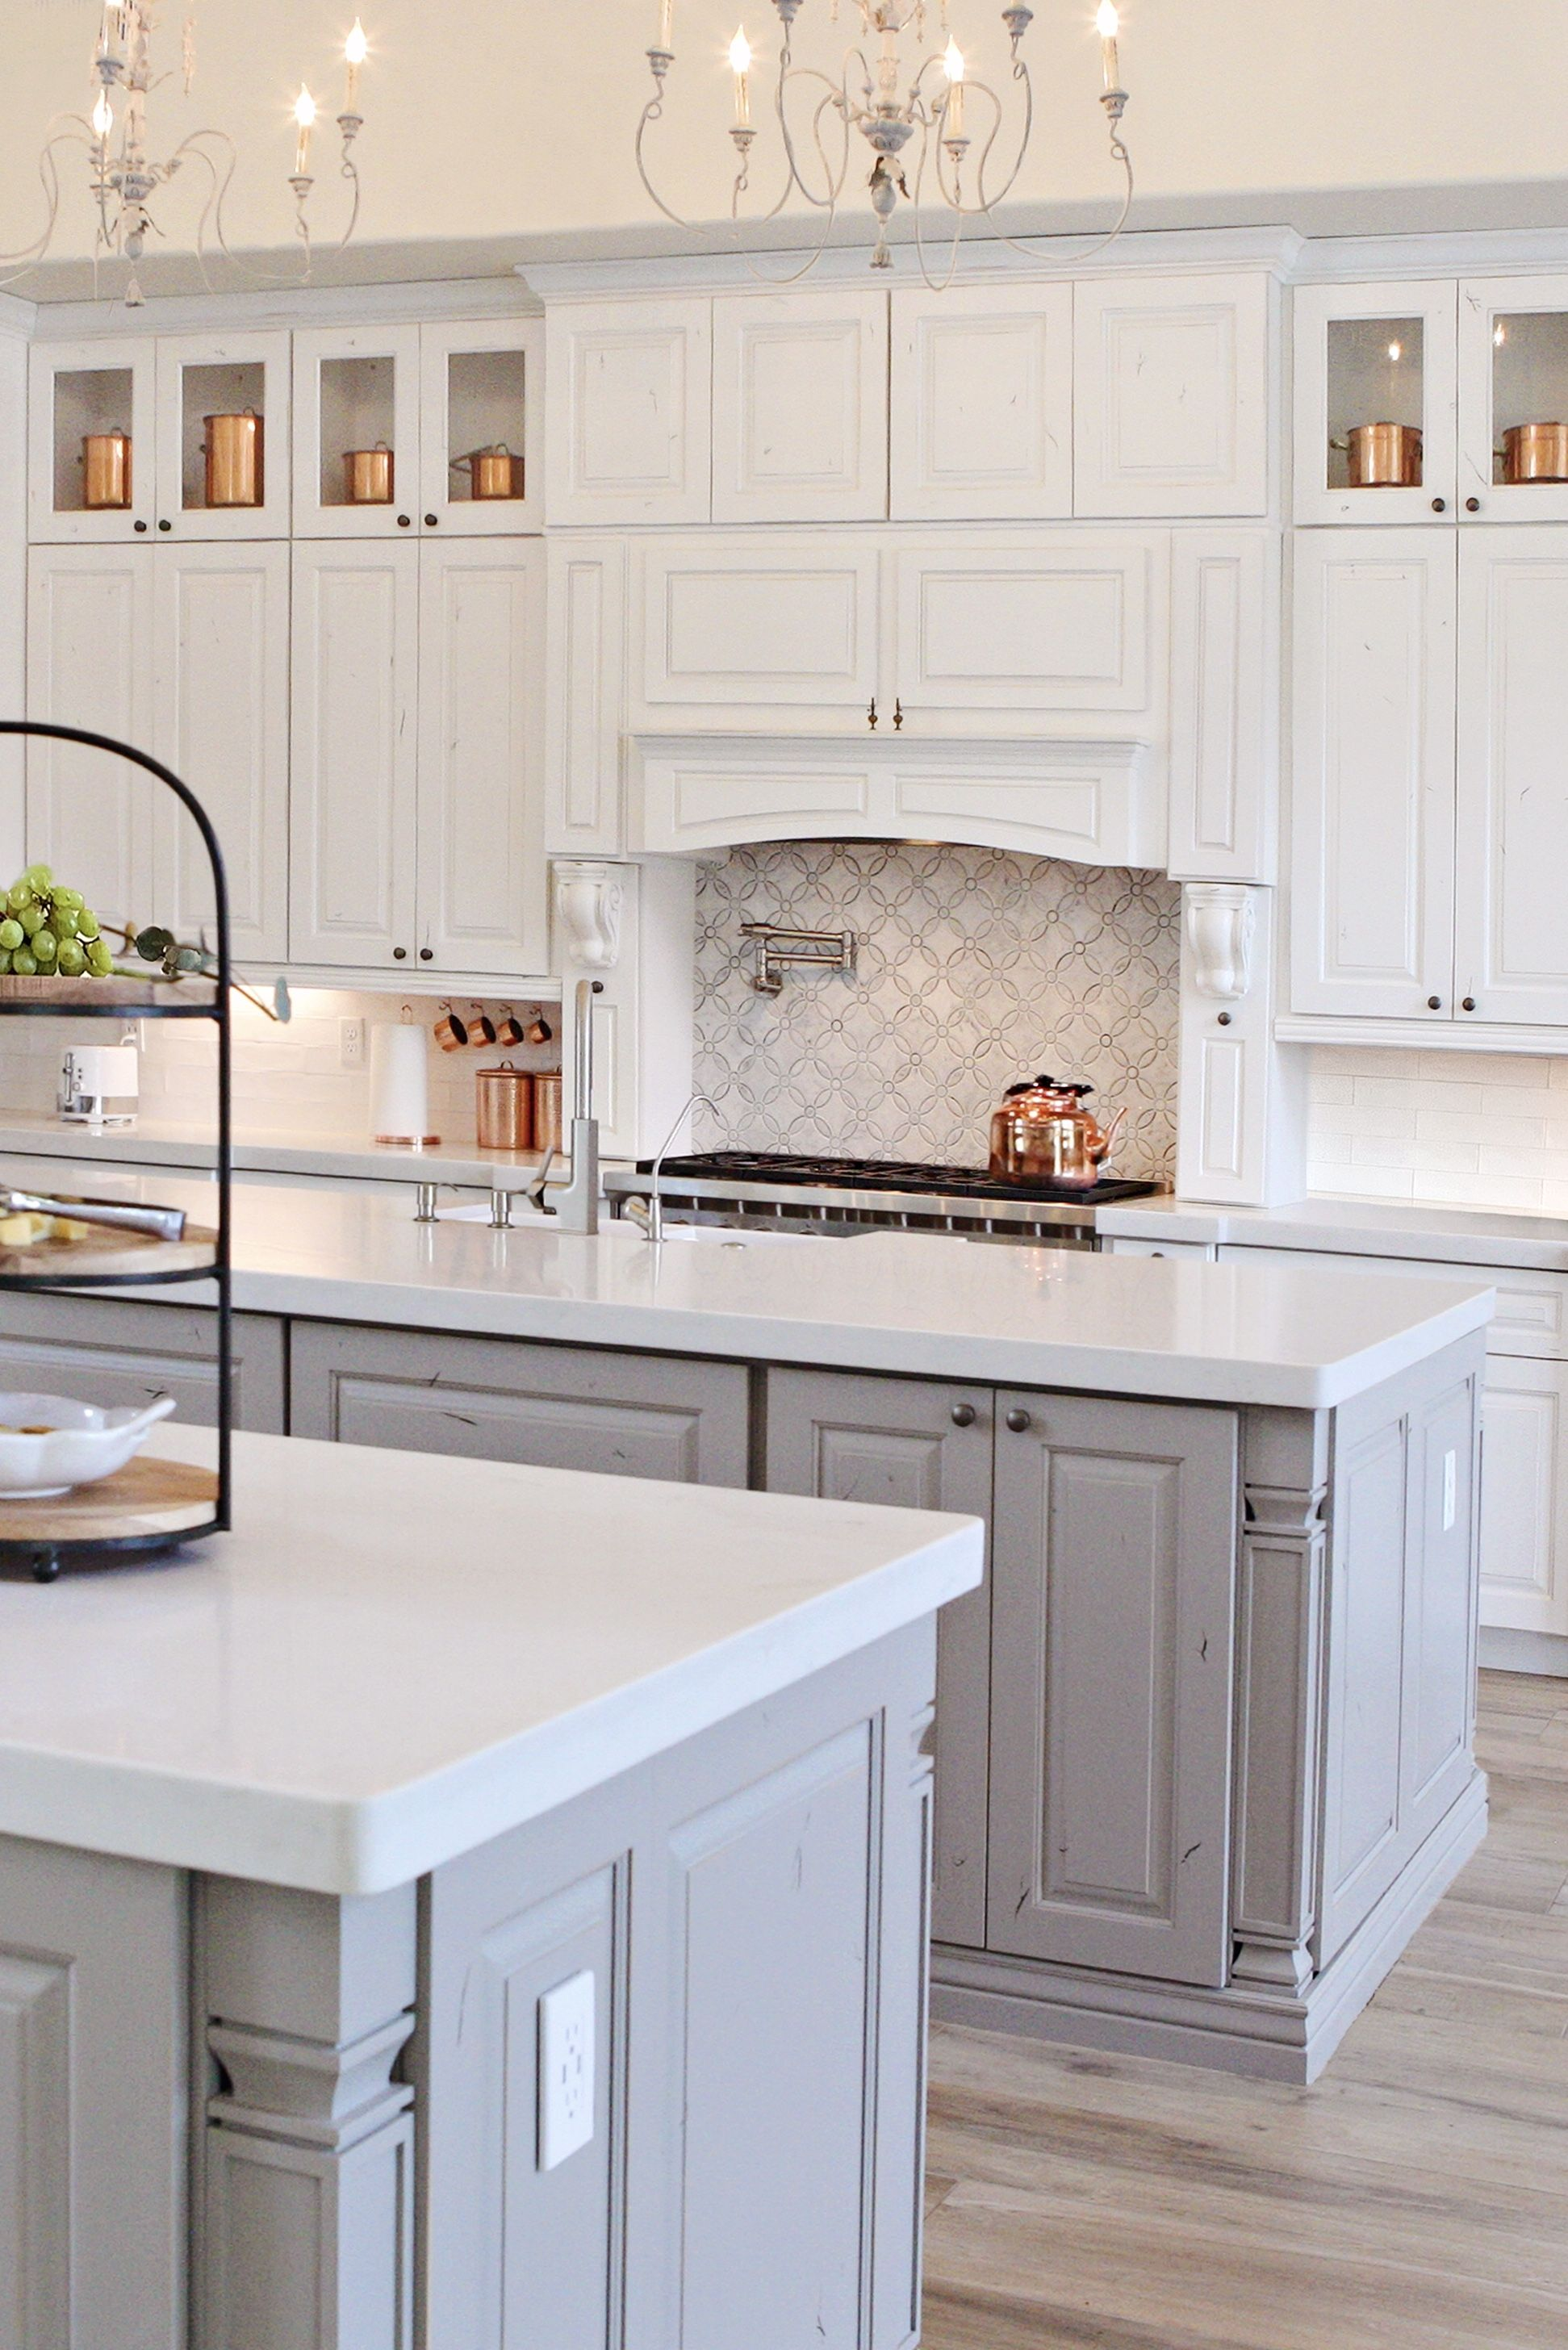 A Beautiful Two Tone White And Grey Kitchen Design Kitchen Cabinets Grey And White Gray And White Kitchen Grey Kitchen Designs